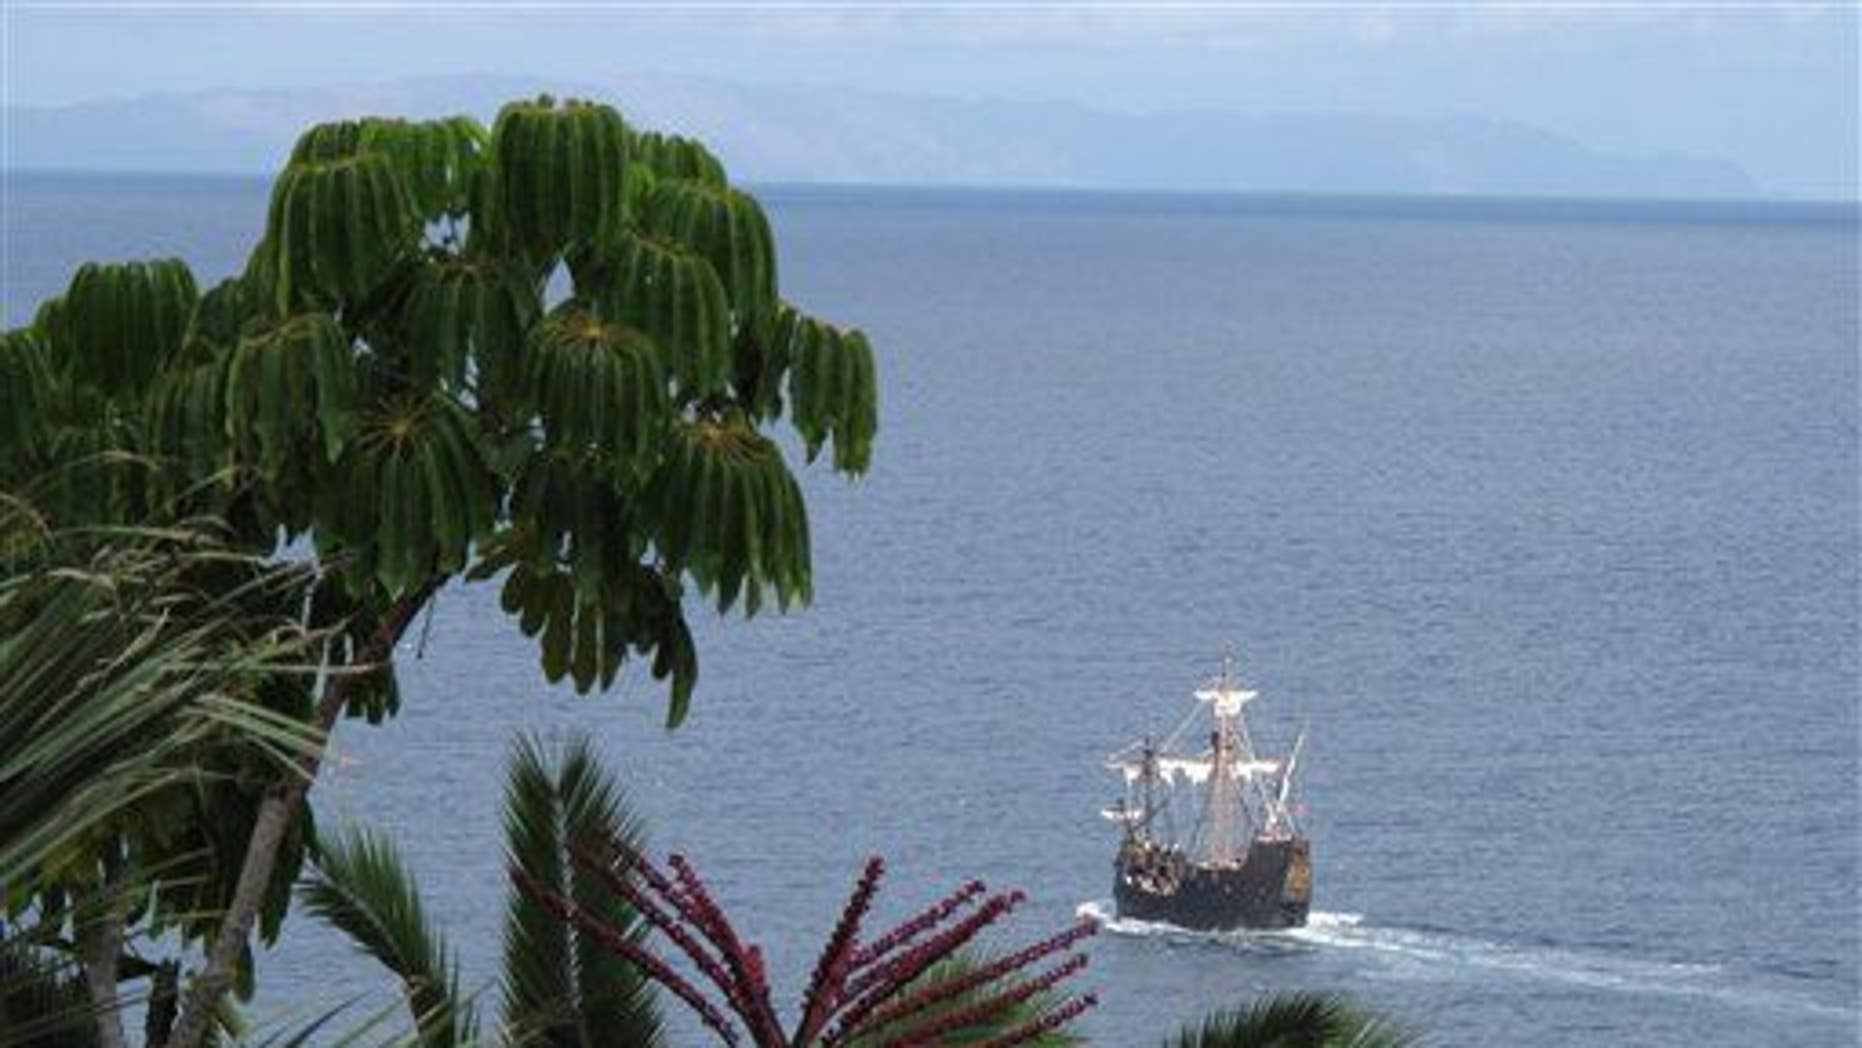 In this photo taken Sept. 12, 2011, a replica of Christopher Columbus' flagship, the Santa Maria, makes its way past the Portuguese island of Madeira.